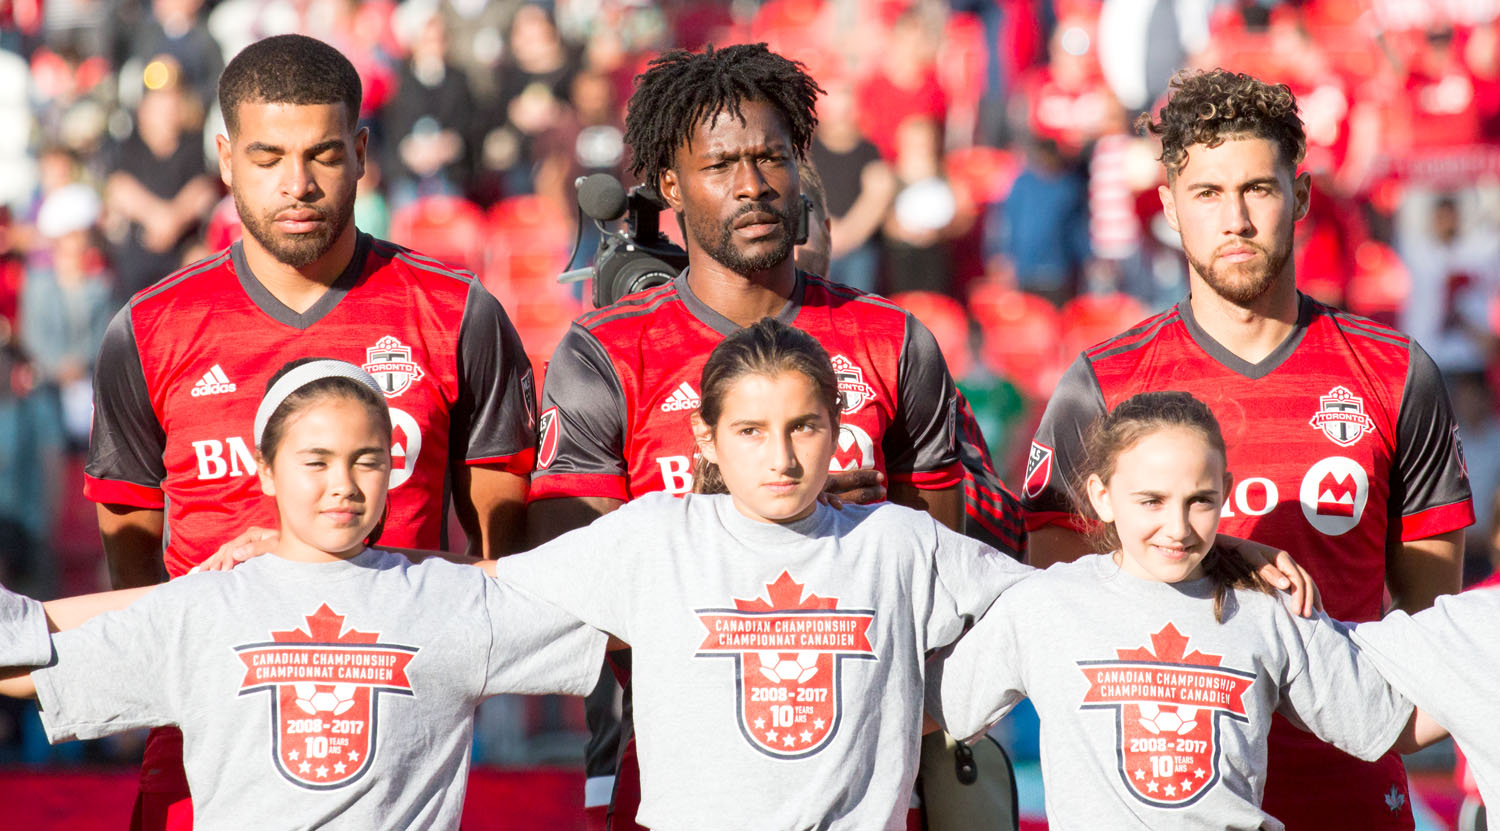 Jordan Hamilton,Tosaint Ricketts, and Jonathan Osorio line up for the Canadian National Anthem during a Canadian Championship game in 2017.Jonathan Osorio.Image by Dennis Marciniak of denMAR Media.